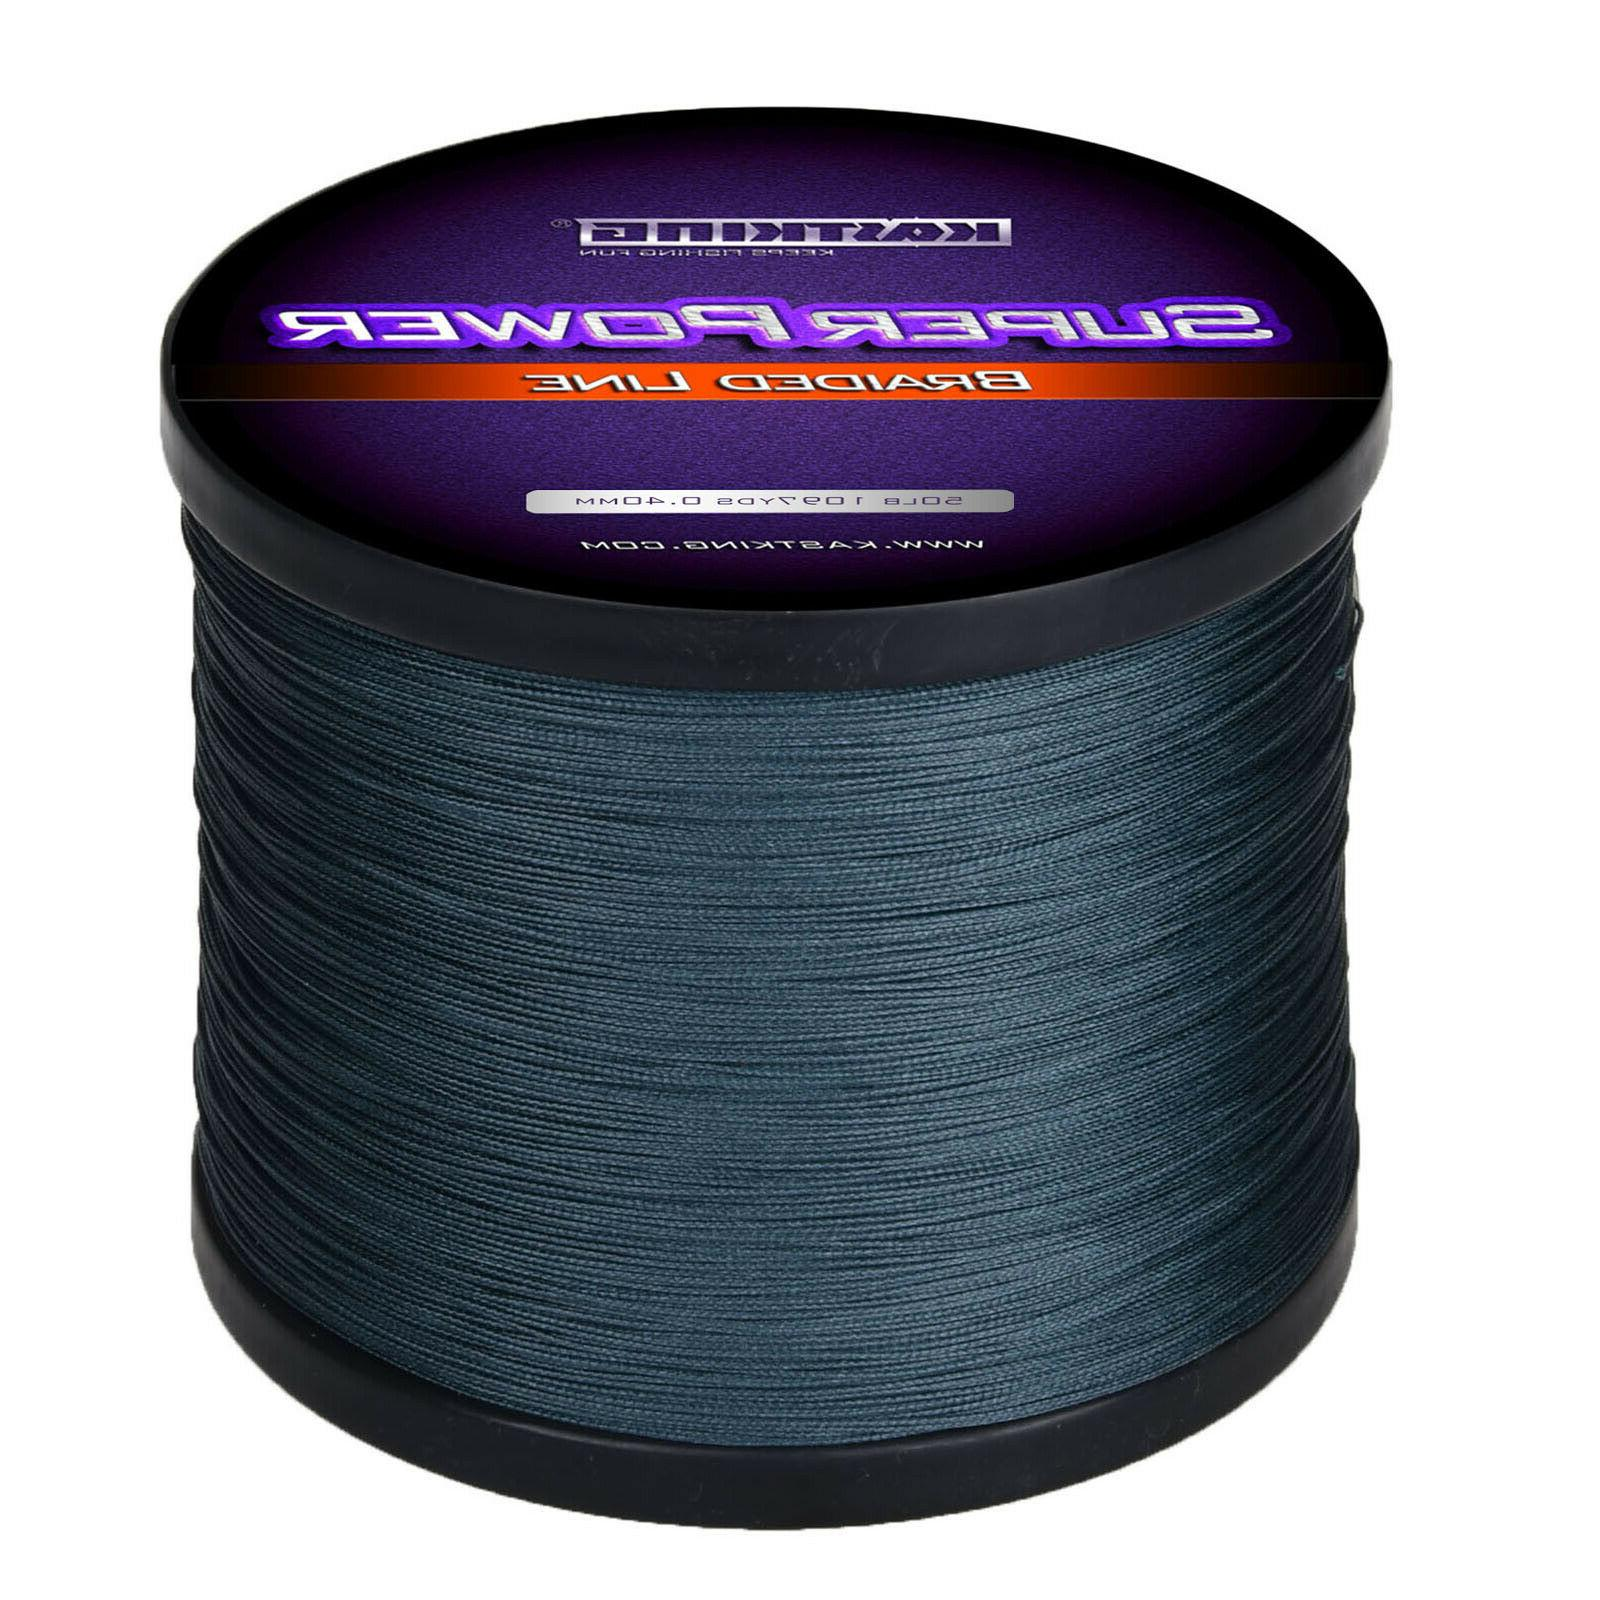 1000m superpower braided fishing line incredible braided